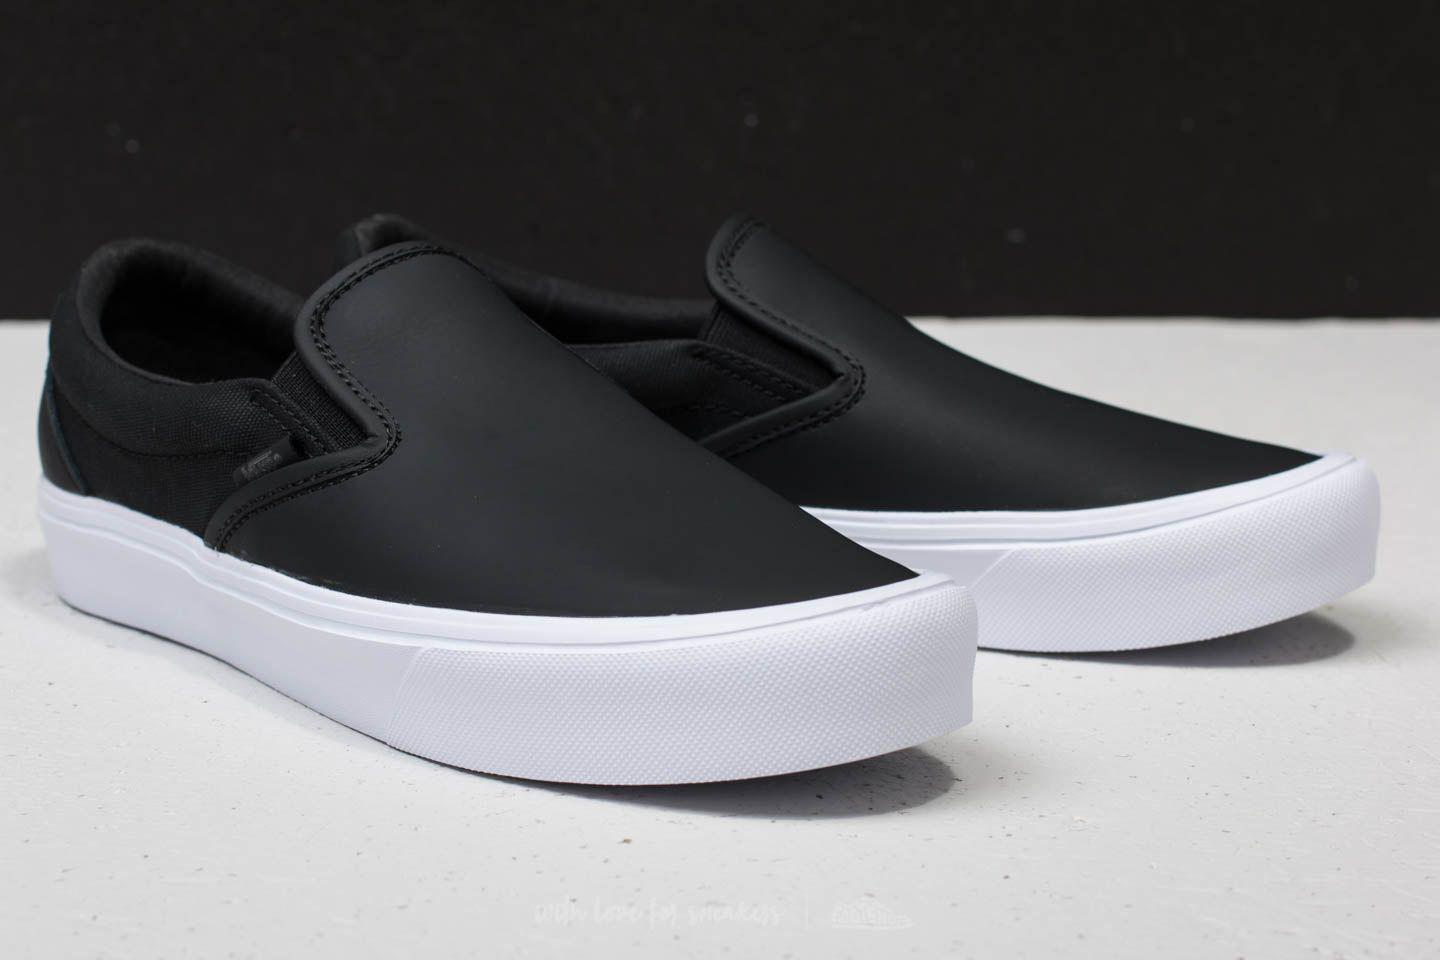 Lyst - Vans Slip-on Lite (rains) Black  True White in Black for Men 7bd61aa38